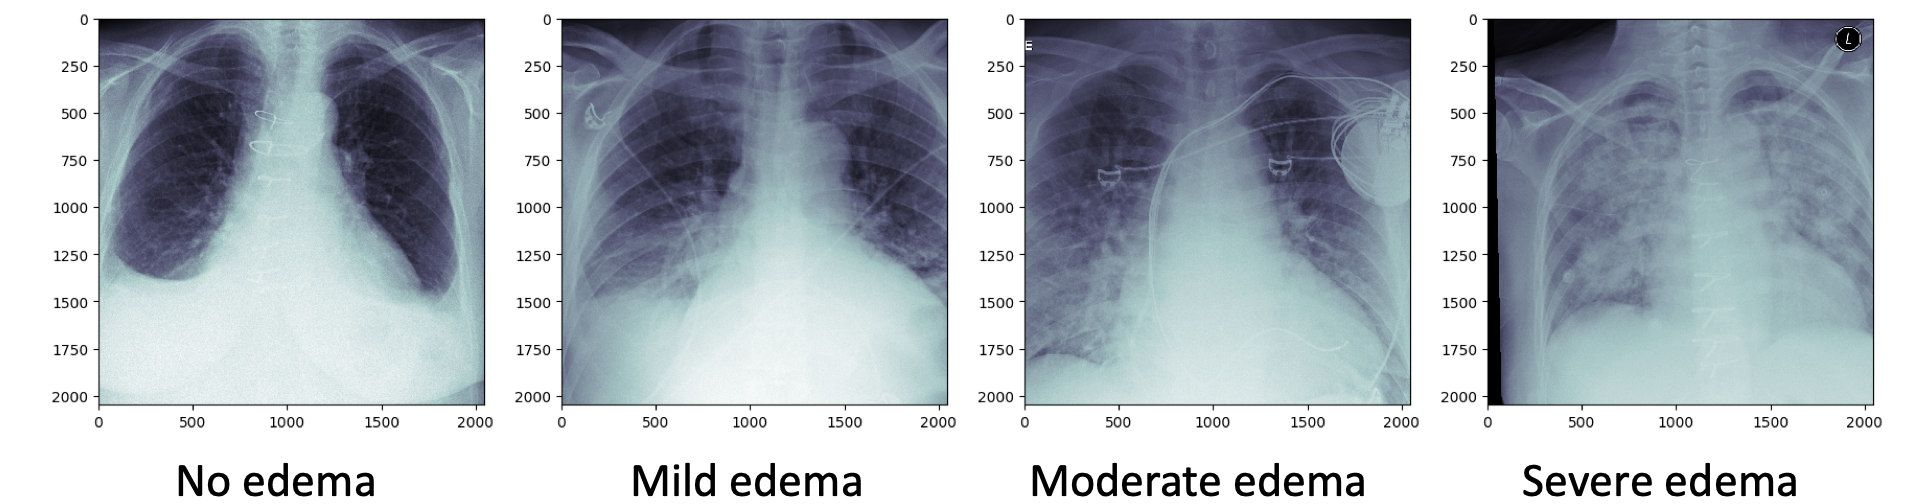 Representative chest x-rays of pulmonary edema